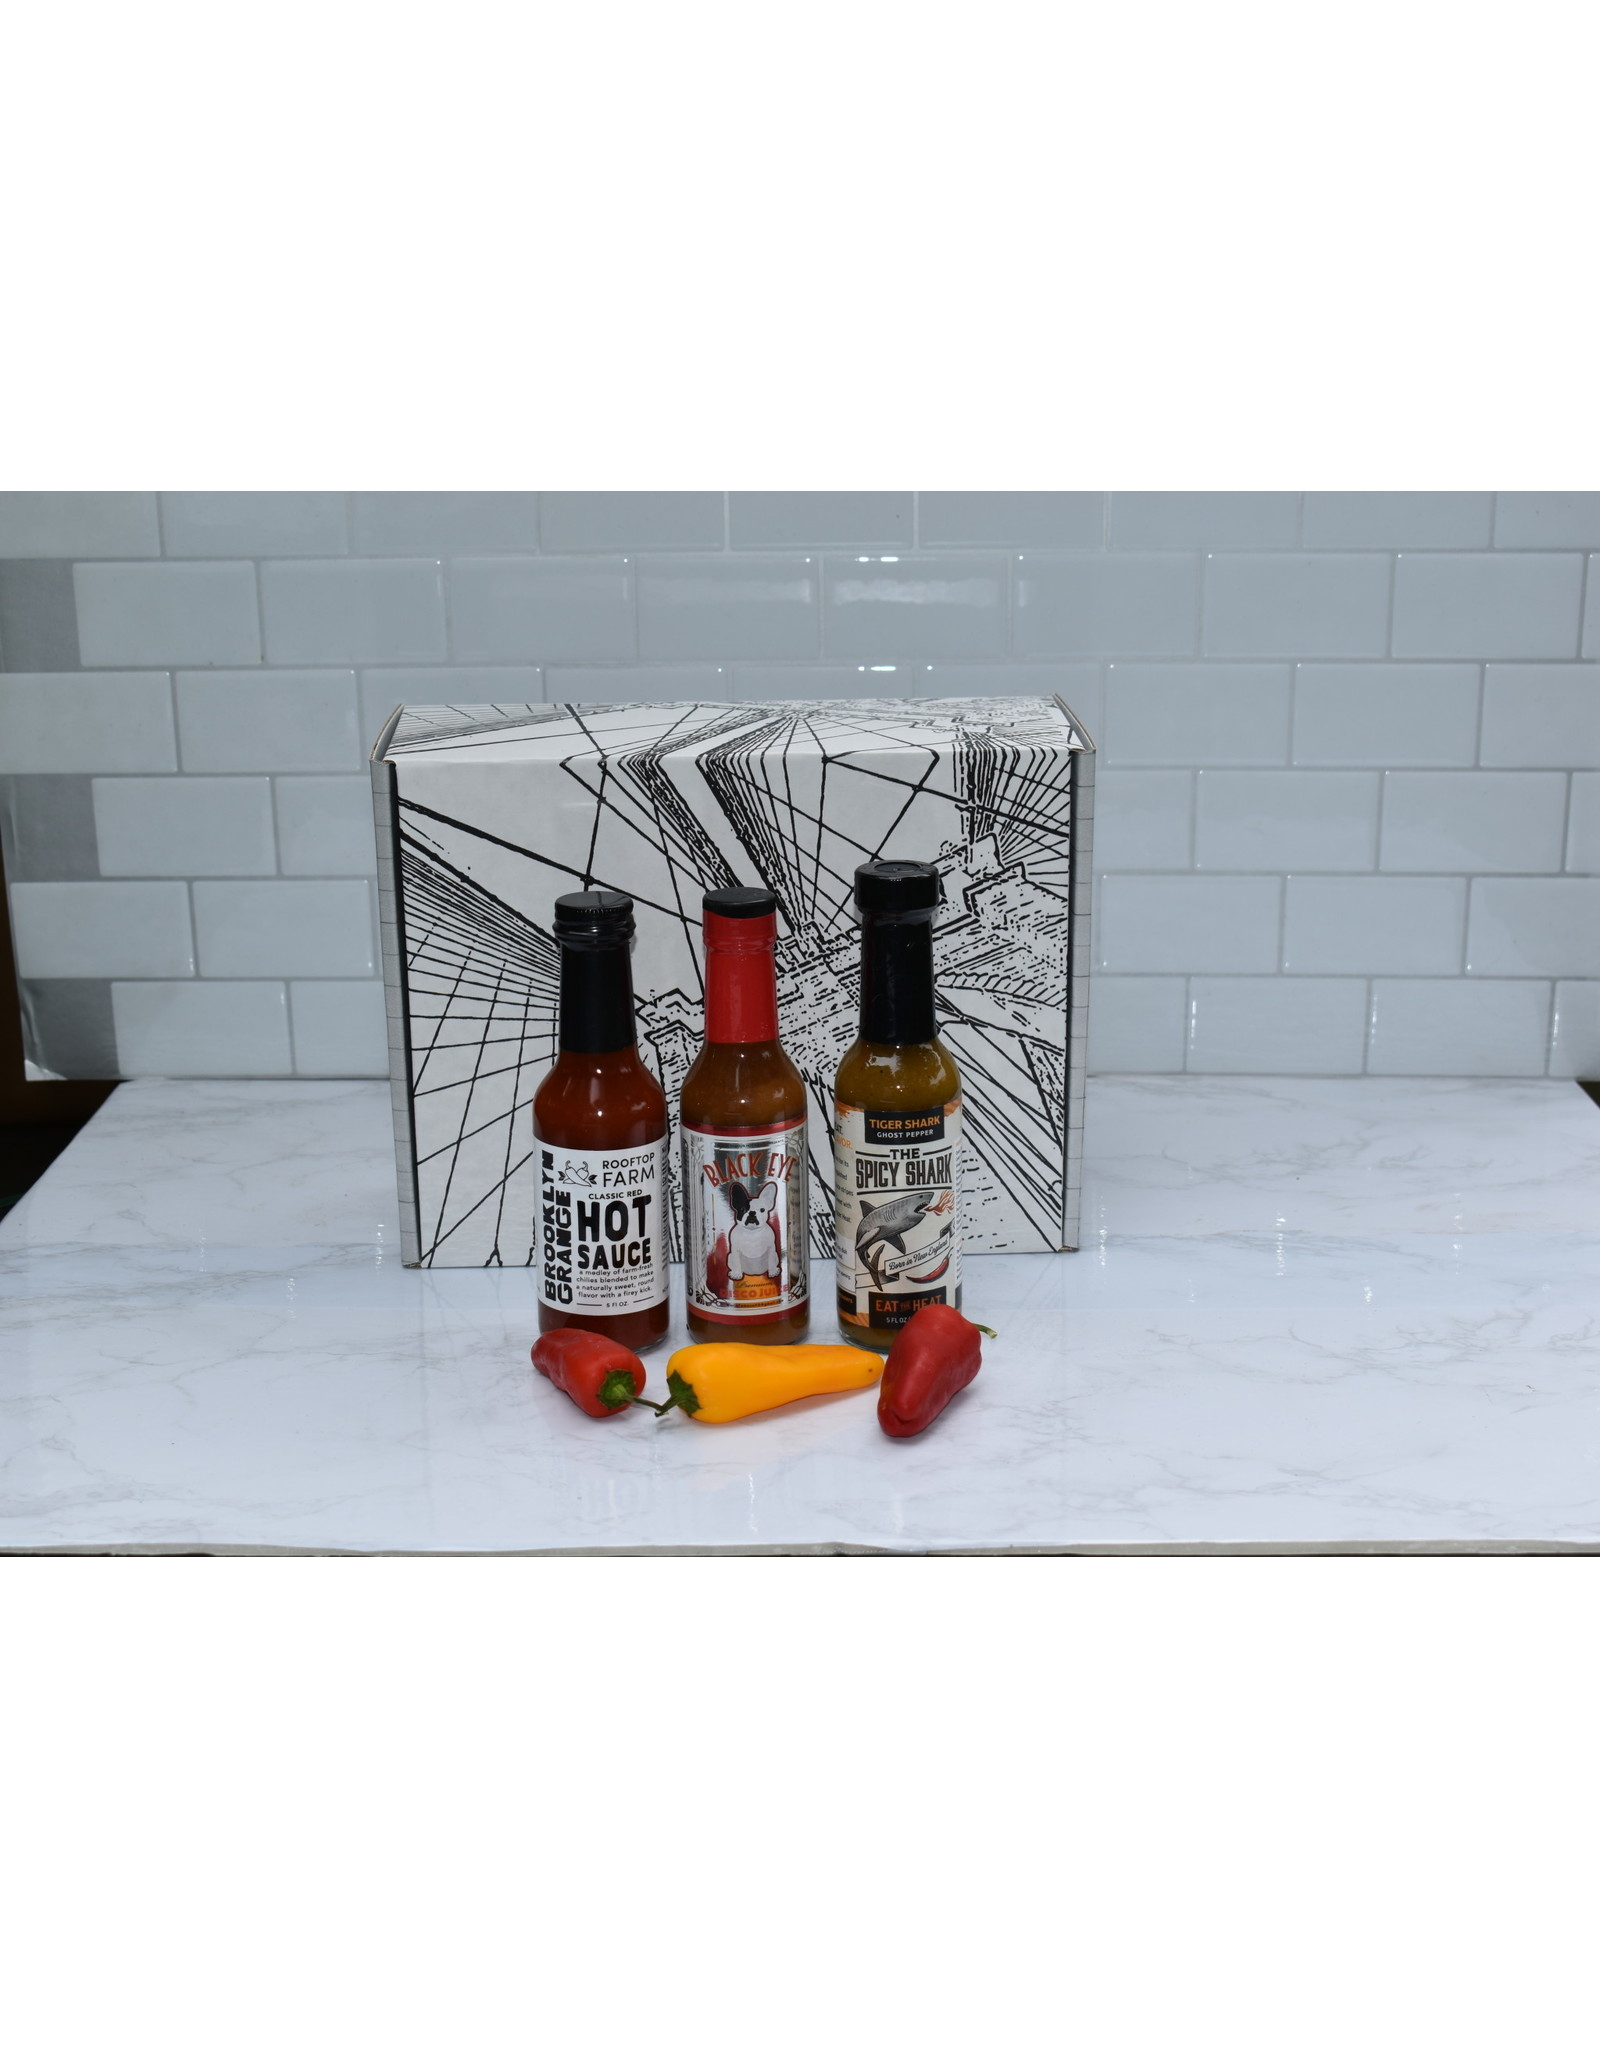 Exit9 Gift Emporium Hot Sauce Trio #2.  A giveback product!